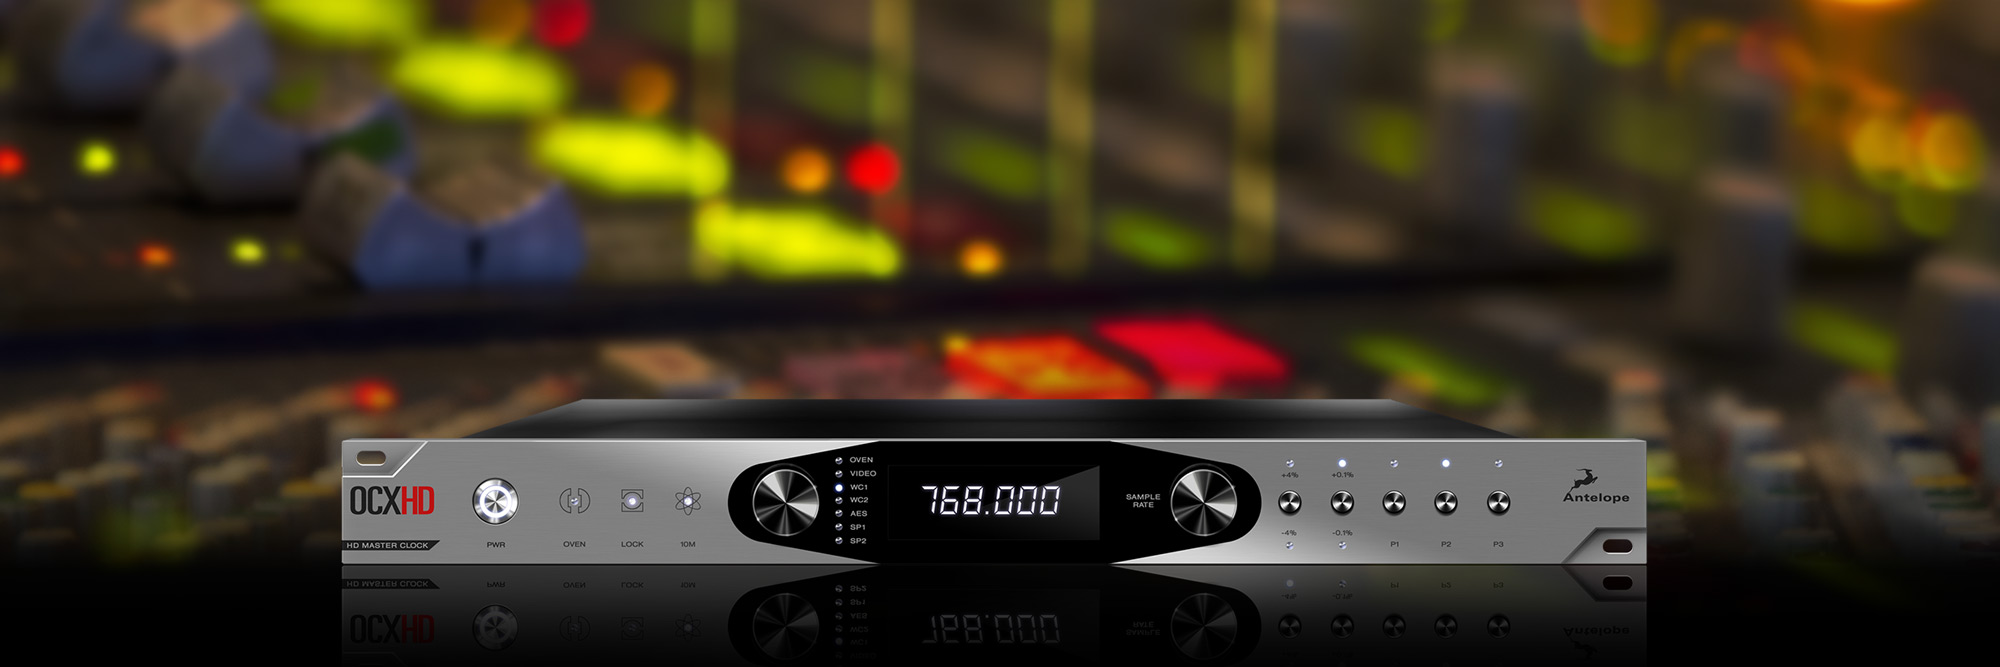 The New OCX HD Master Clock from Antelope Audio: The Culmination of Two Decades of Leadership in Digital Audio Technologies